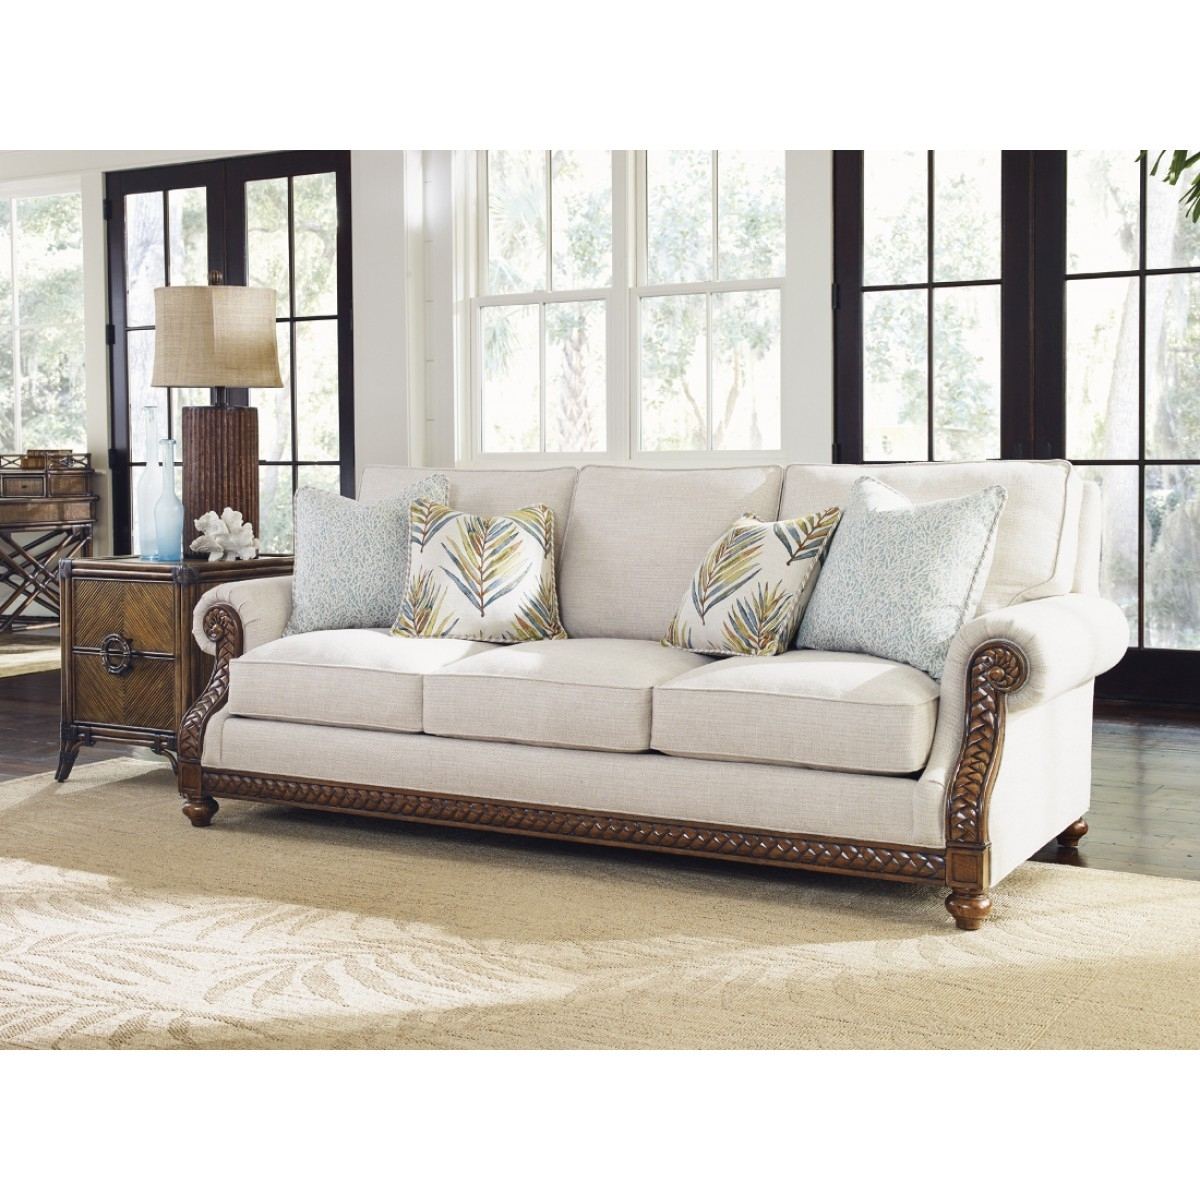 Tommy Bahama Home Bali Hai Shoreline Sofa With Regard To Marcus Oyster 6 Piece Sectionals With Power Headrest And Usb (Image 17 of 25)